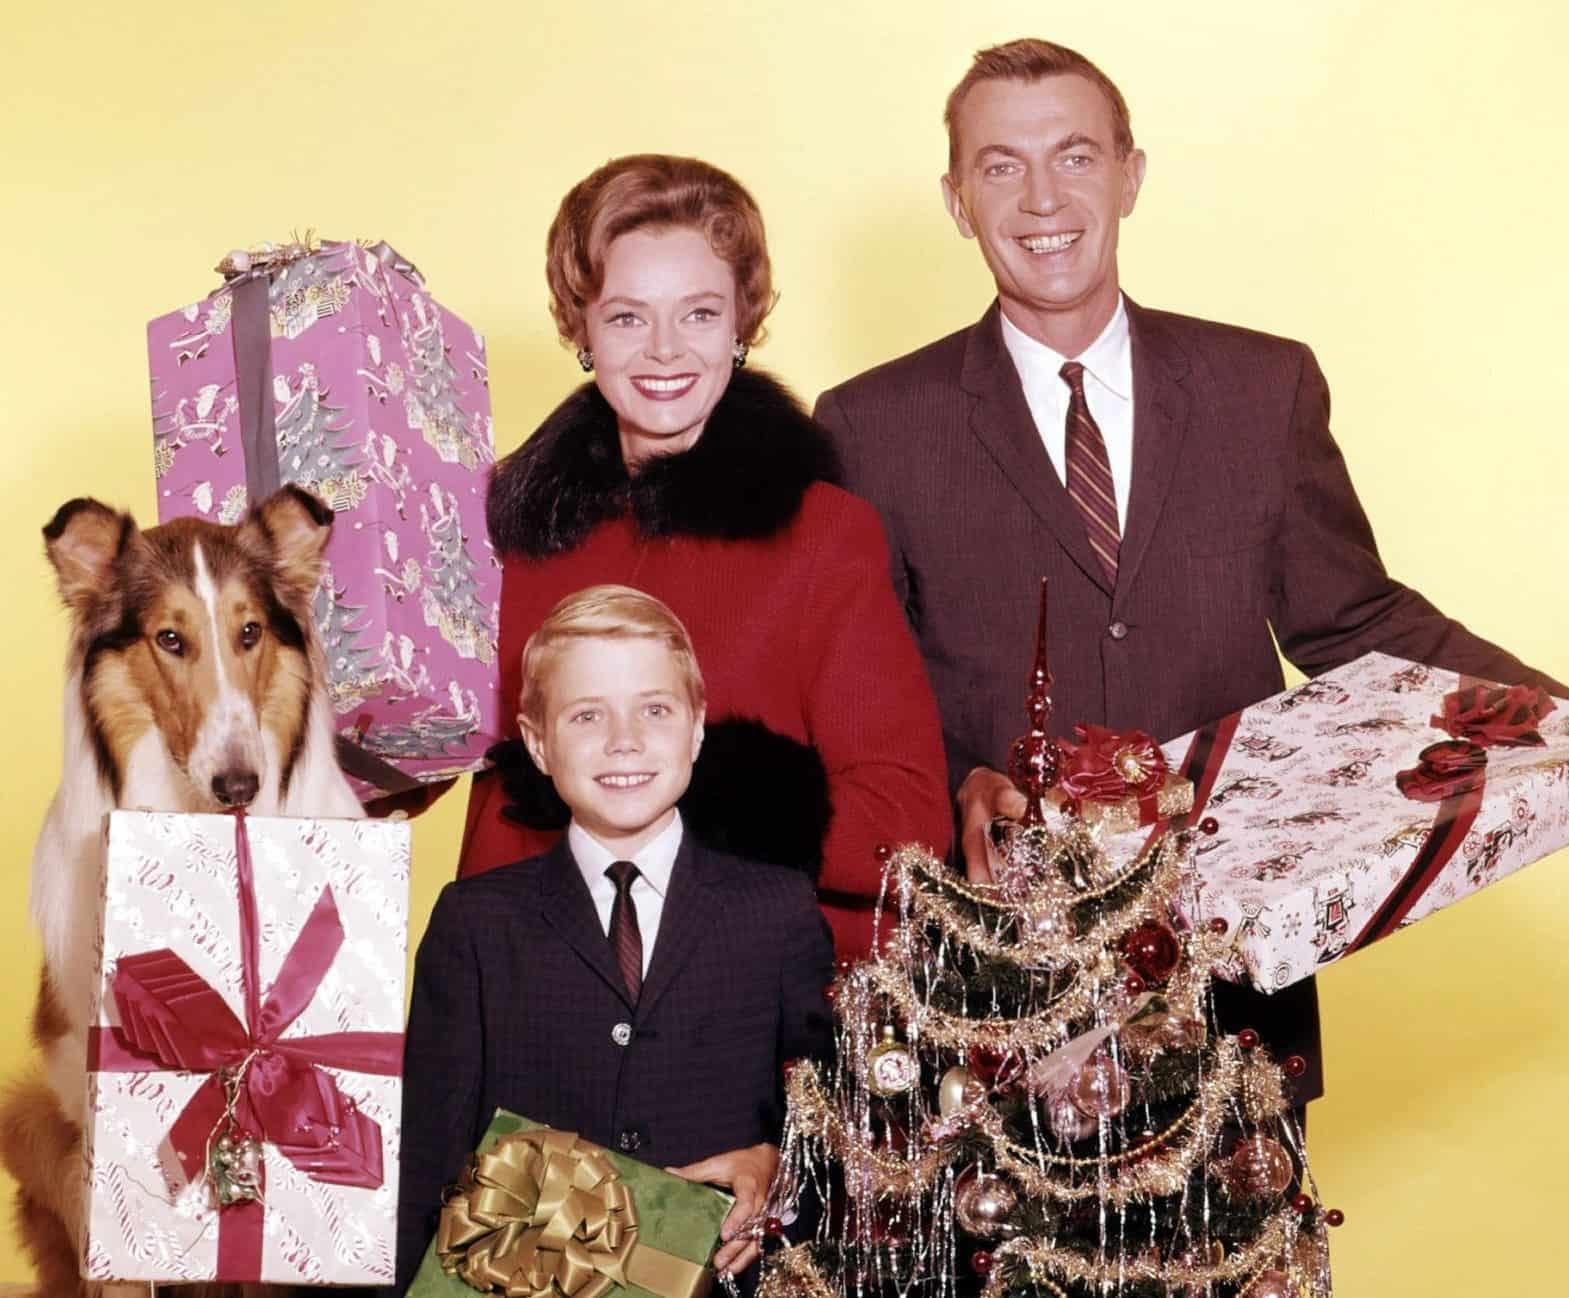 Jon Provost, June Lockhart, Hugh Reilly, and Lassie pose for a Christmas photo